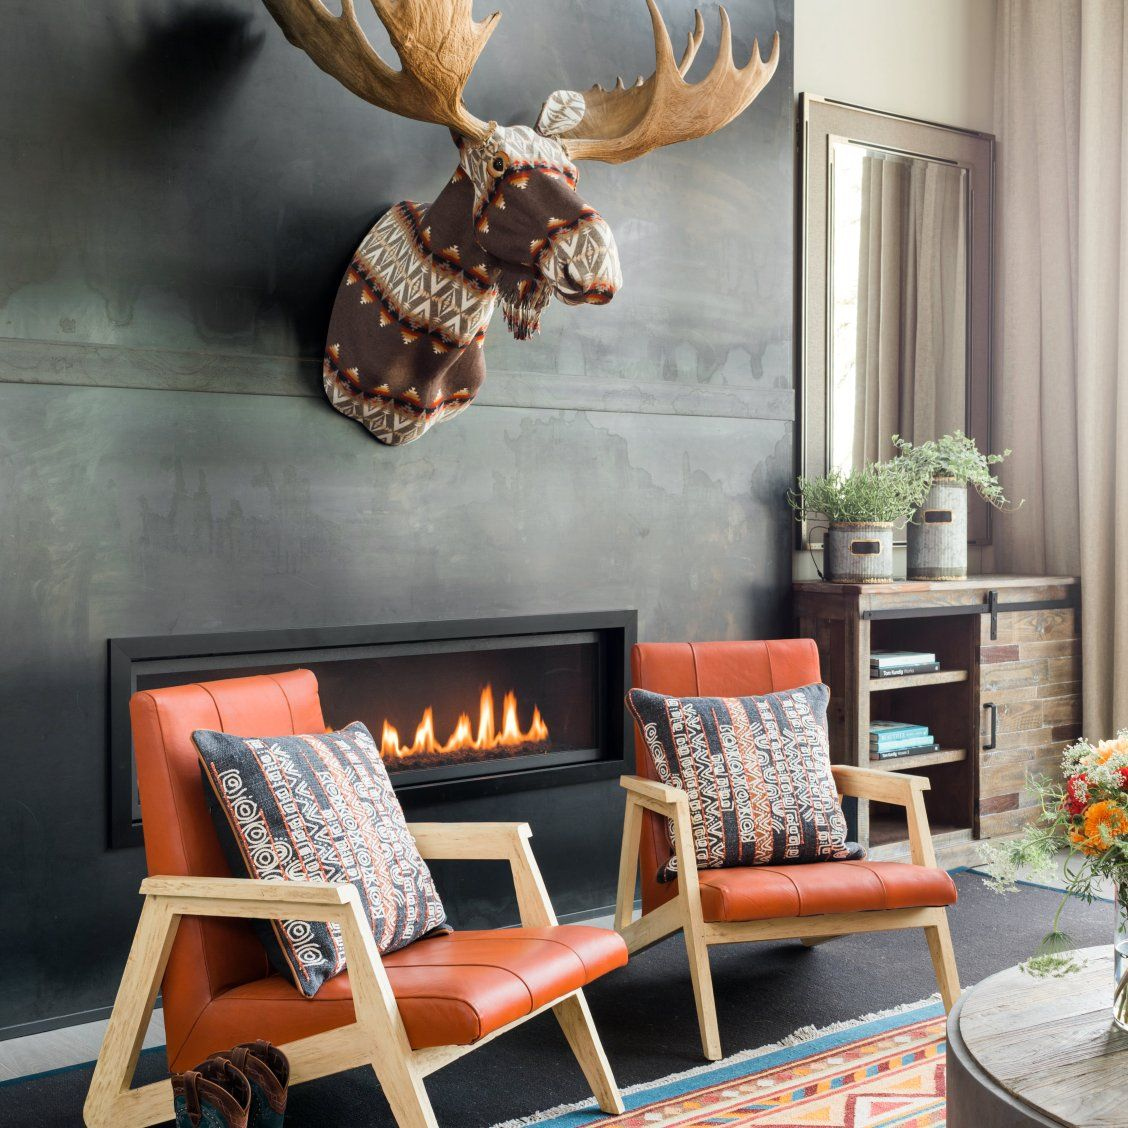 HGTV's 2019 Dream Home Is The Only Place We Want To Be